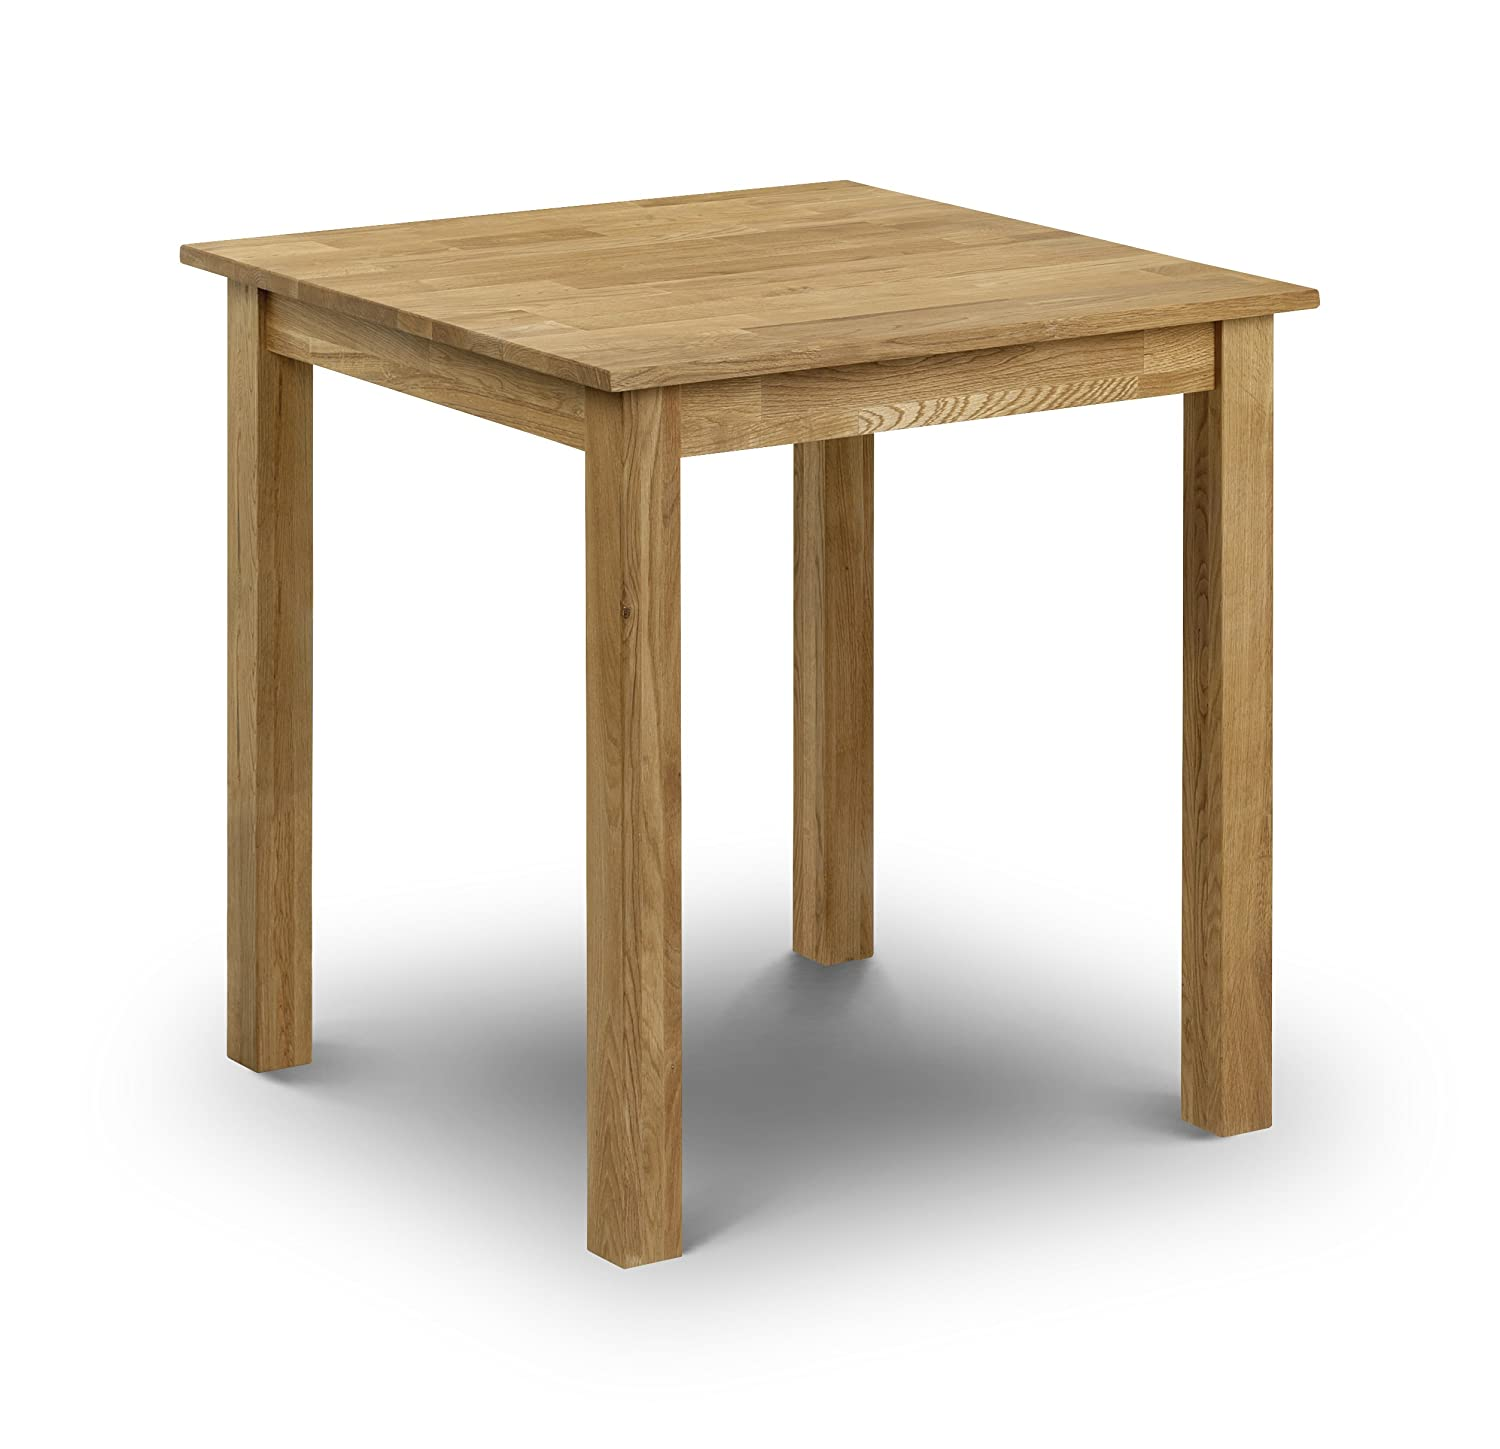 julian bowen coxmoor solid oak square dining table oak amazoncoukkitchen  home. julian bowen coxmoor solid oak square dining table oak amazonco